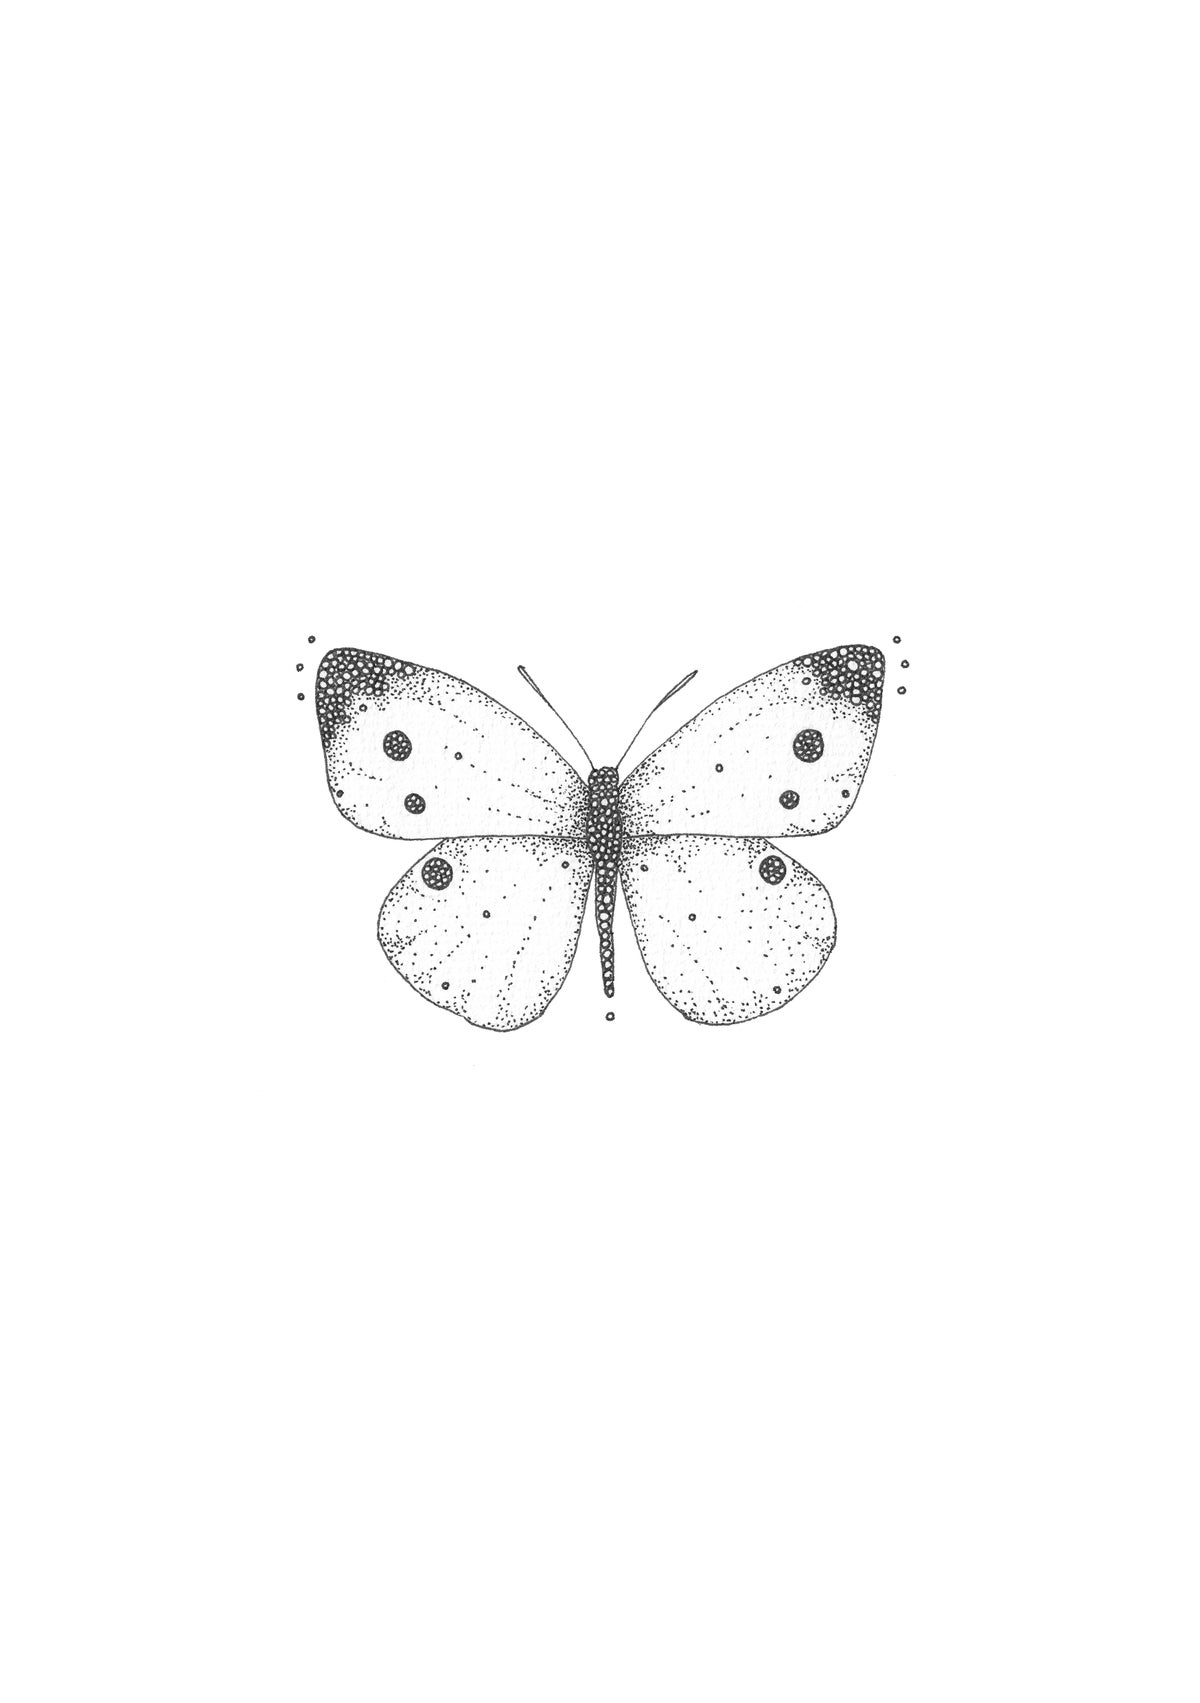 Image of Female Cabbage White